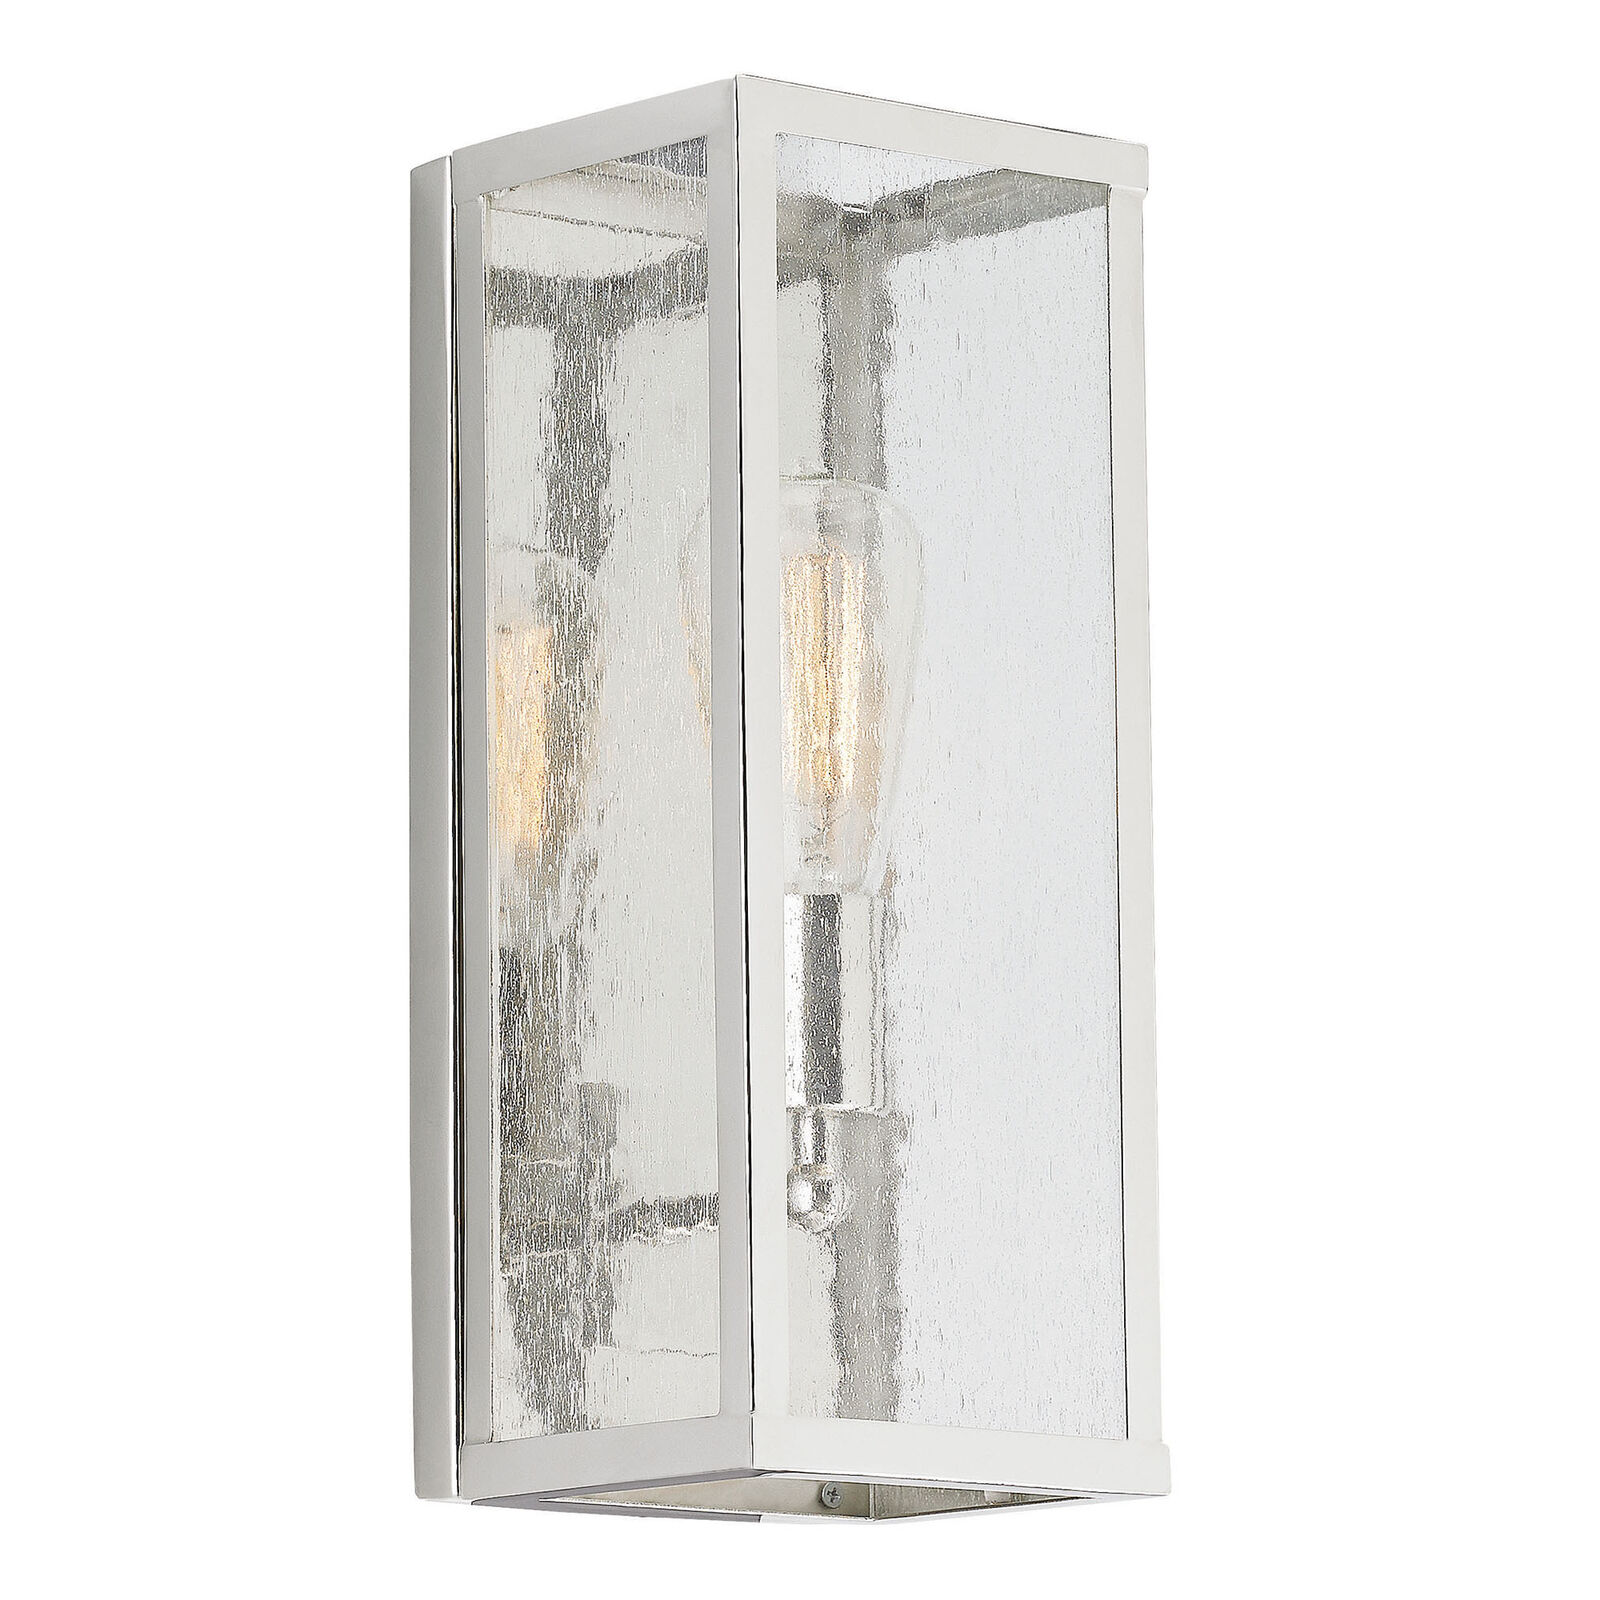 Feiss Feiss Feiss Harrow 1lt wall light 1 x 60 W E27 220-240 V 50 Hz Classe I | être Nouvelle Dans La Conception